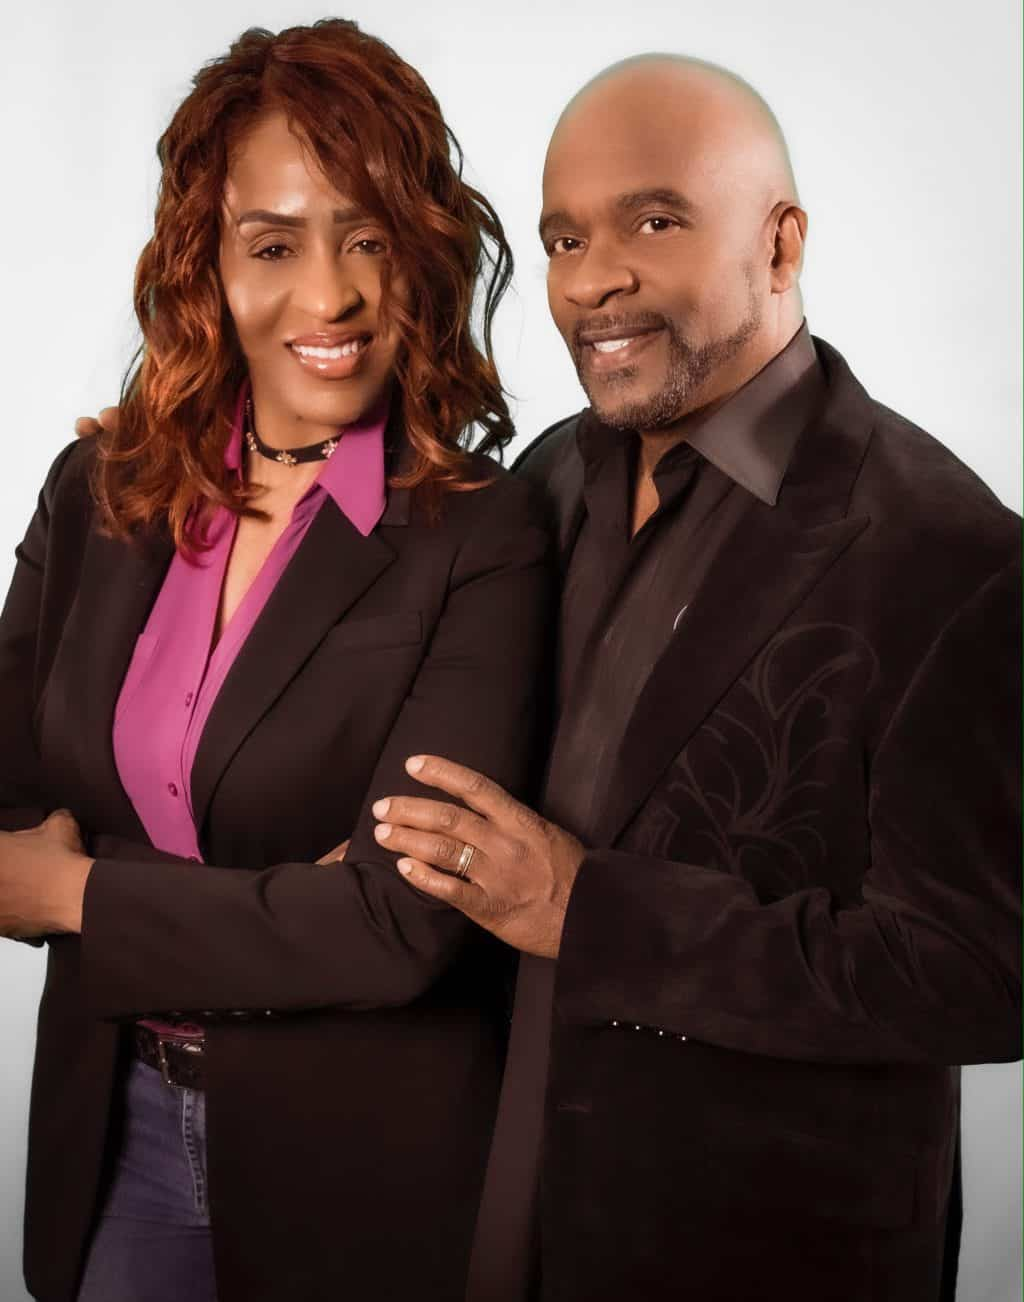 Shawn and Sheryl Brown of Role Model PD